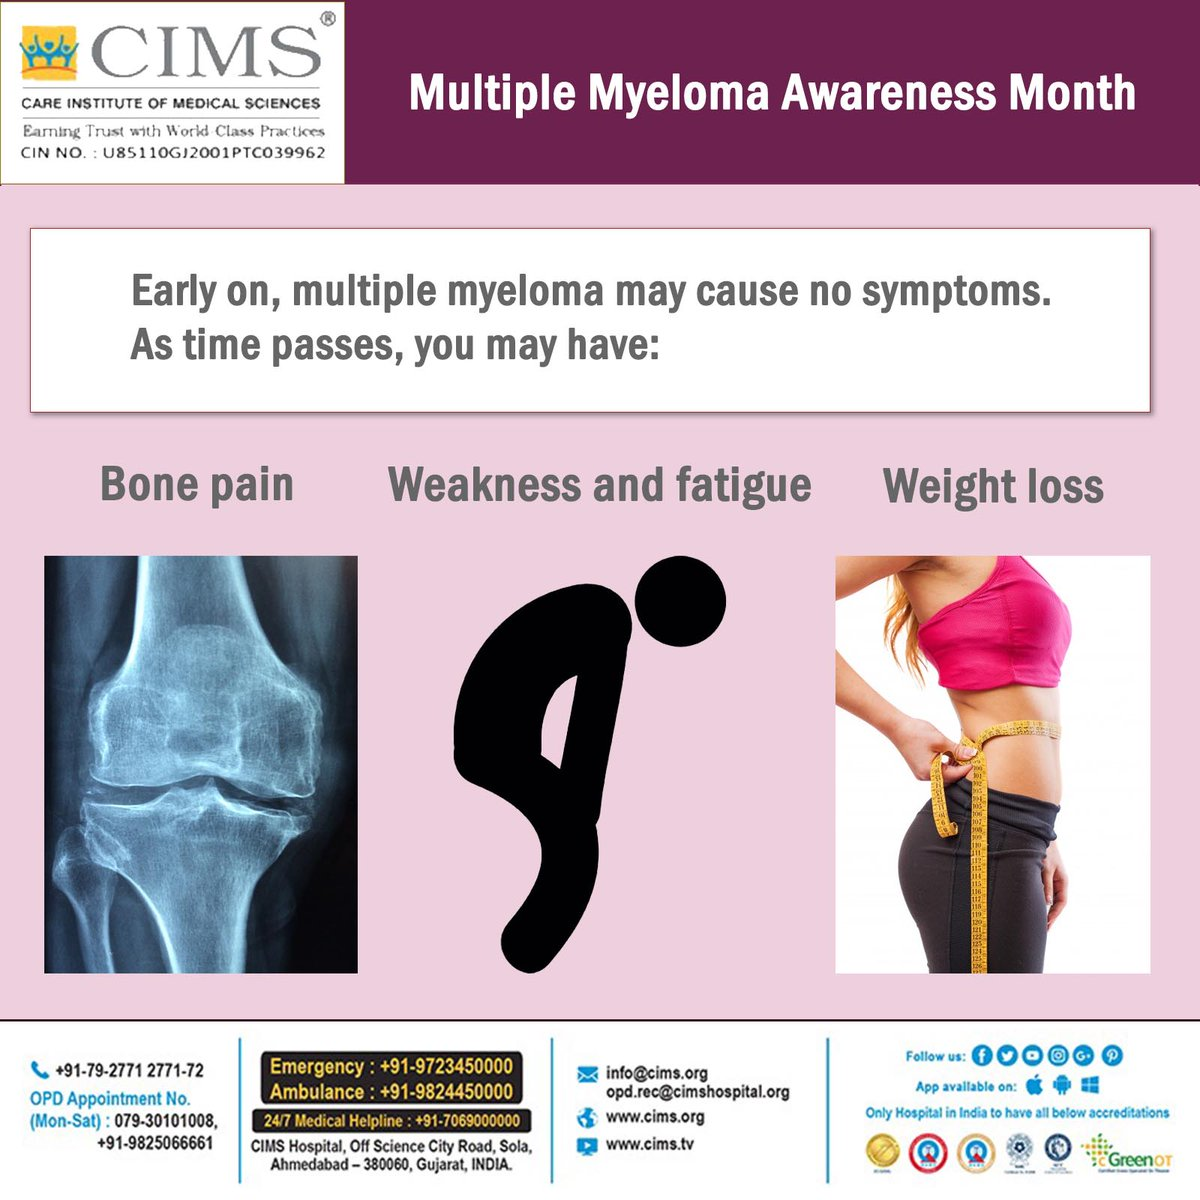 Cims Cancer Center On Twitter Multiple Myeloma Awareness Month